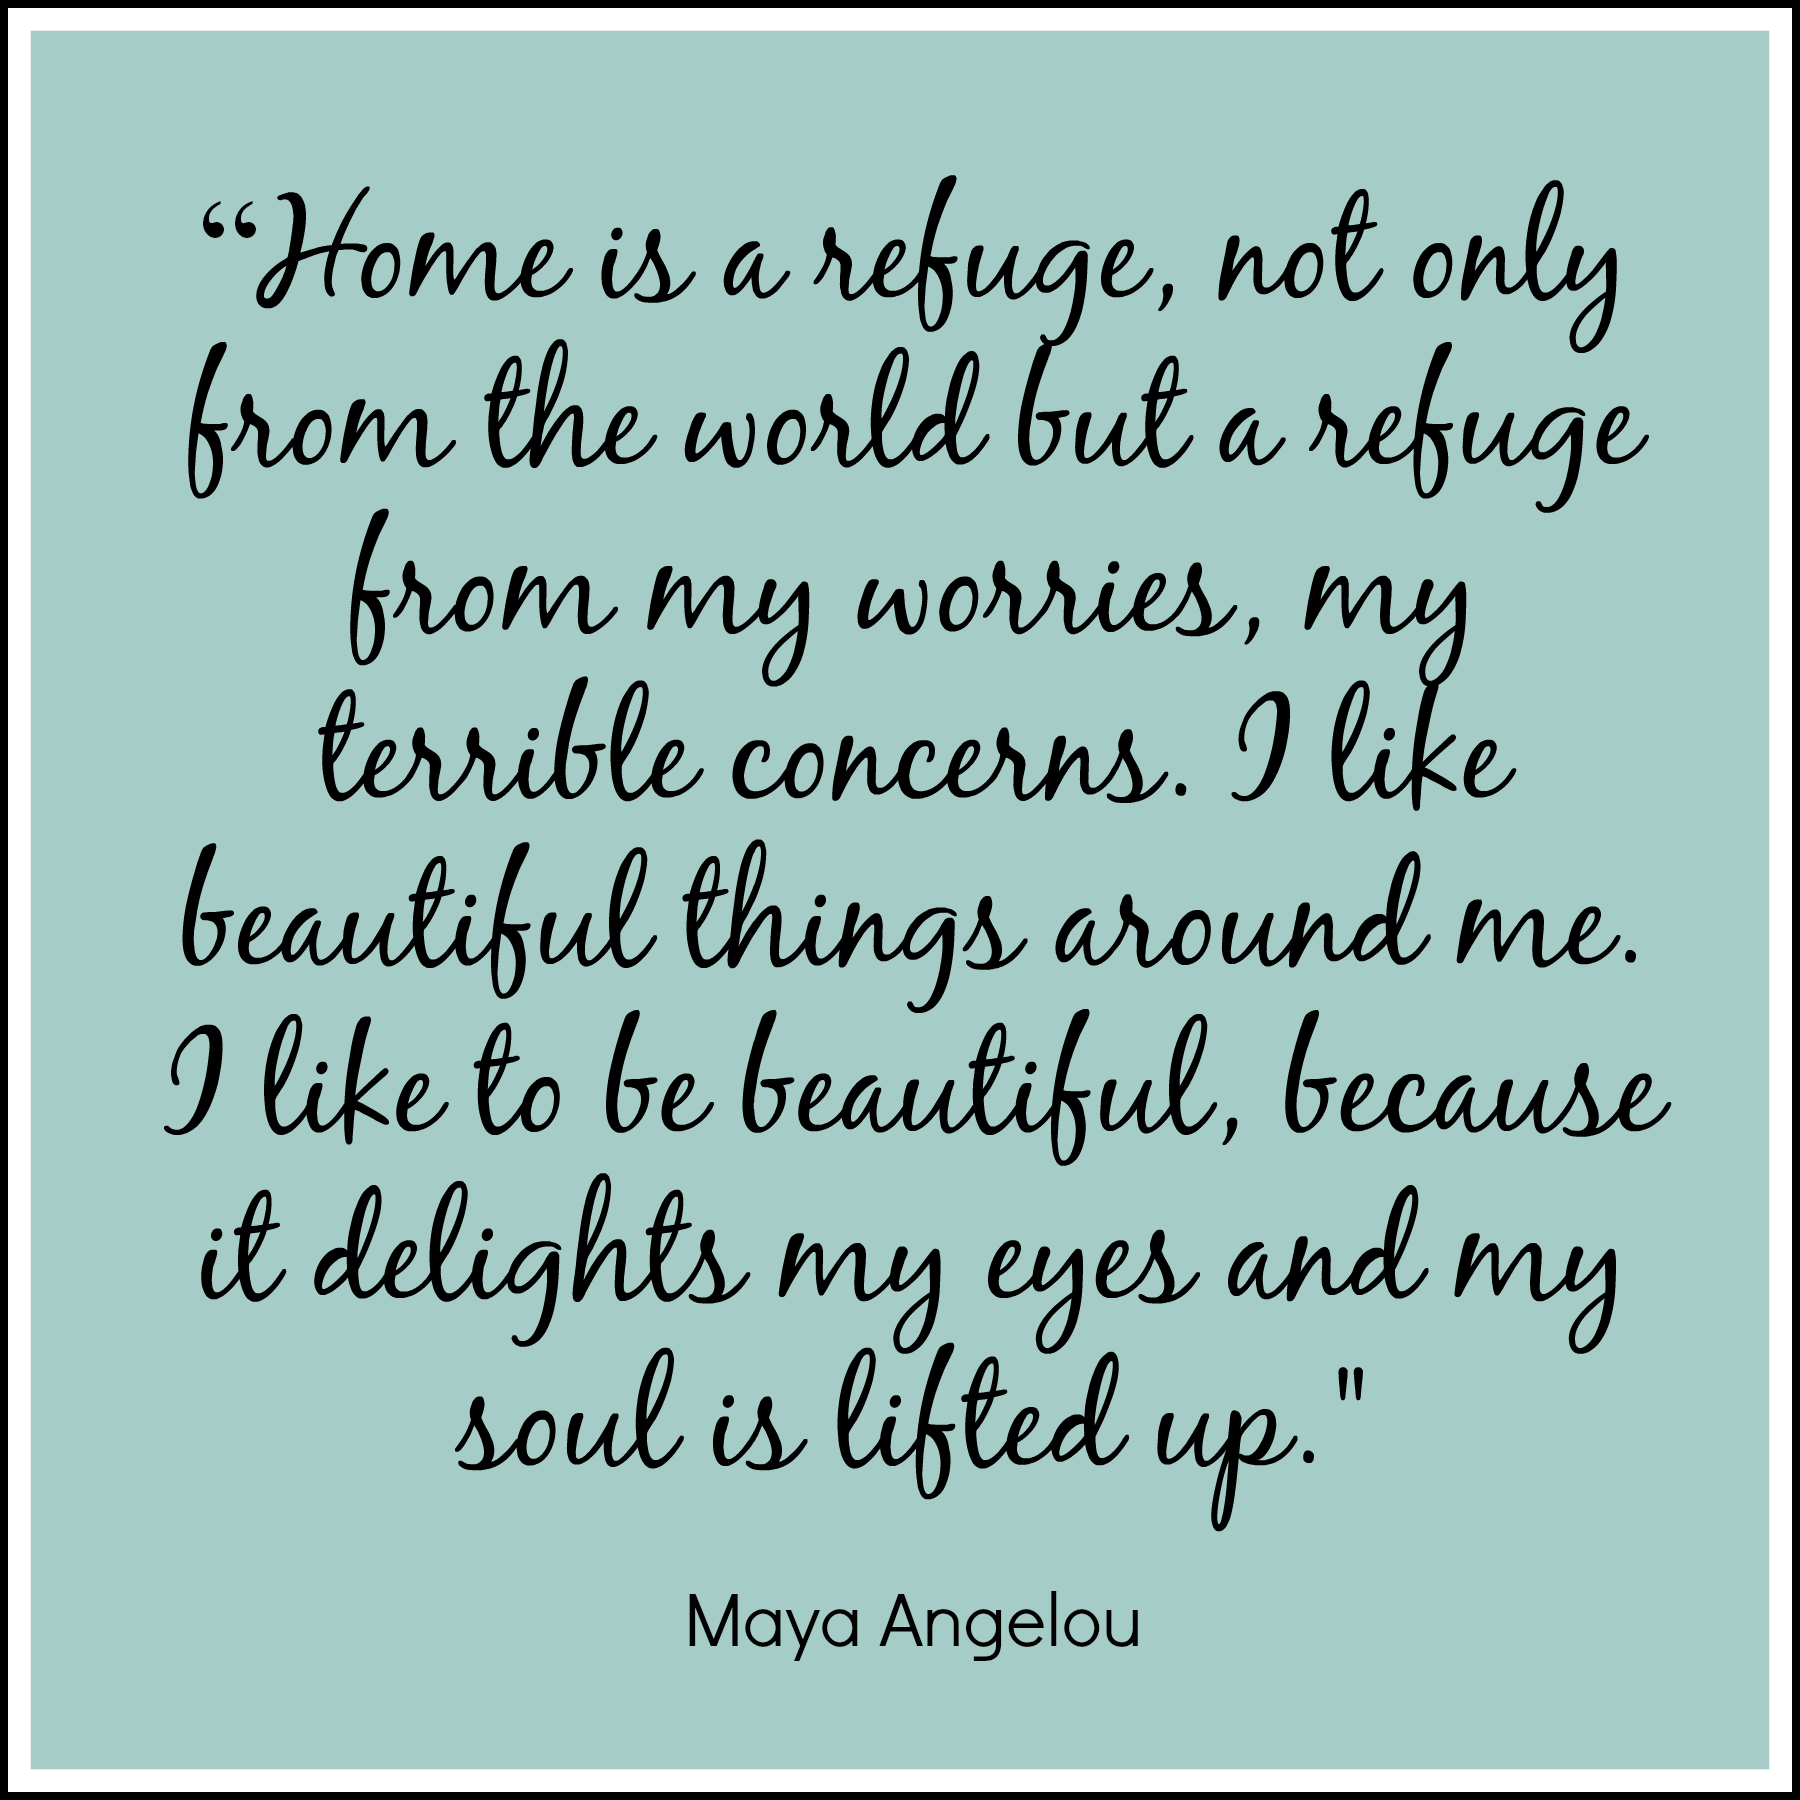 Poetic Quotes About Life Collection Of Poems And Quotesmaya Angelou From Famous Poets